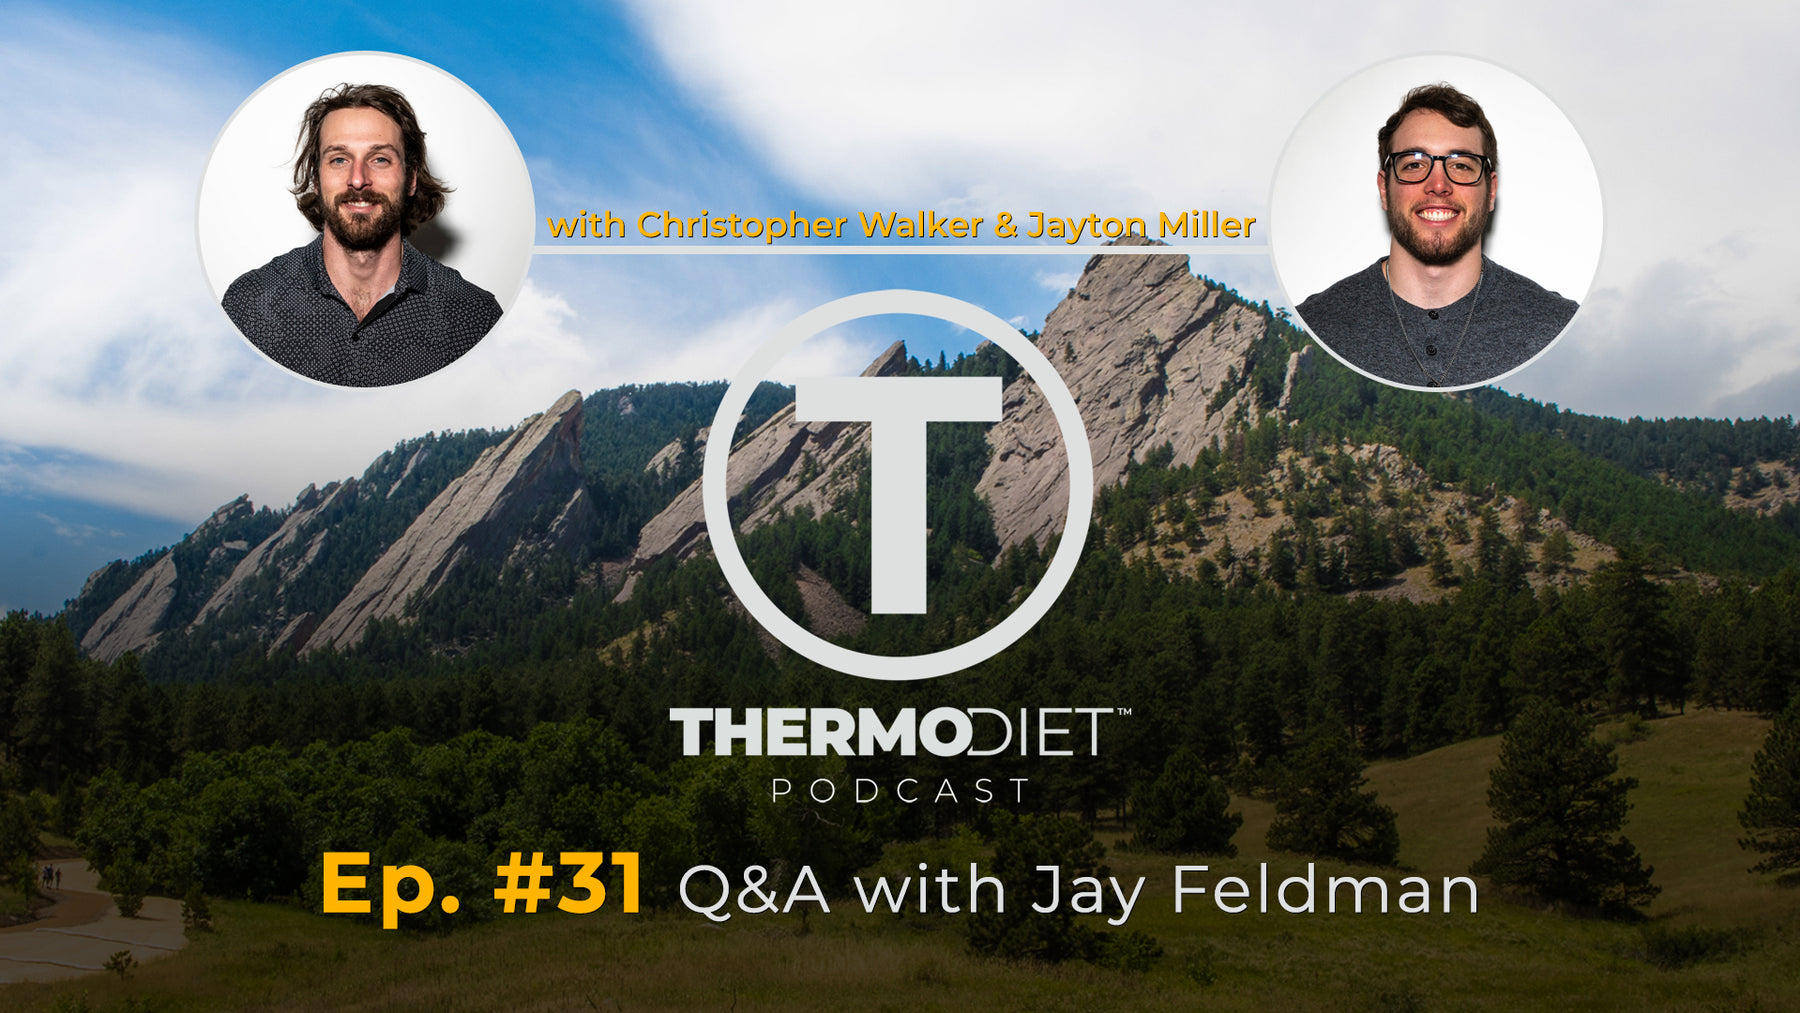 ThermoDiet Podcast Episode 31 - Jay Feldman